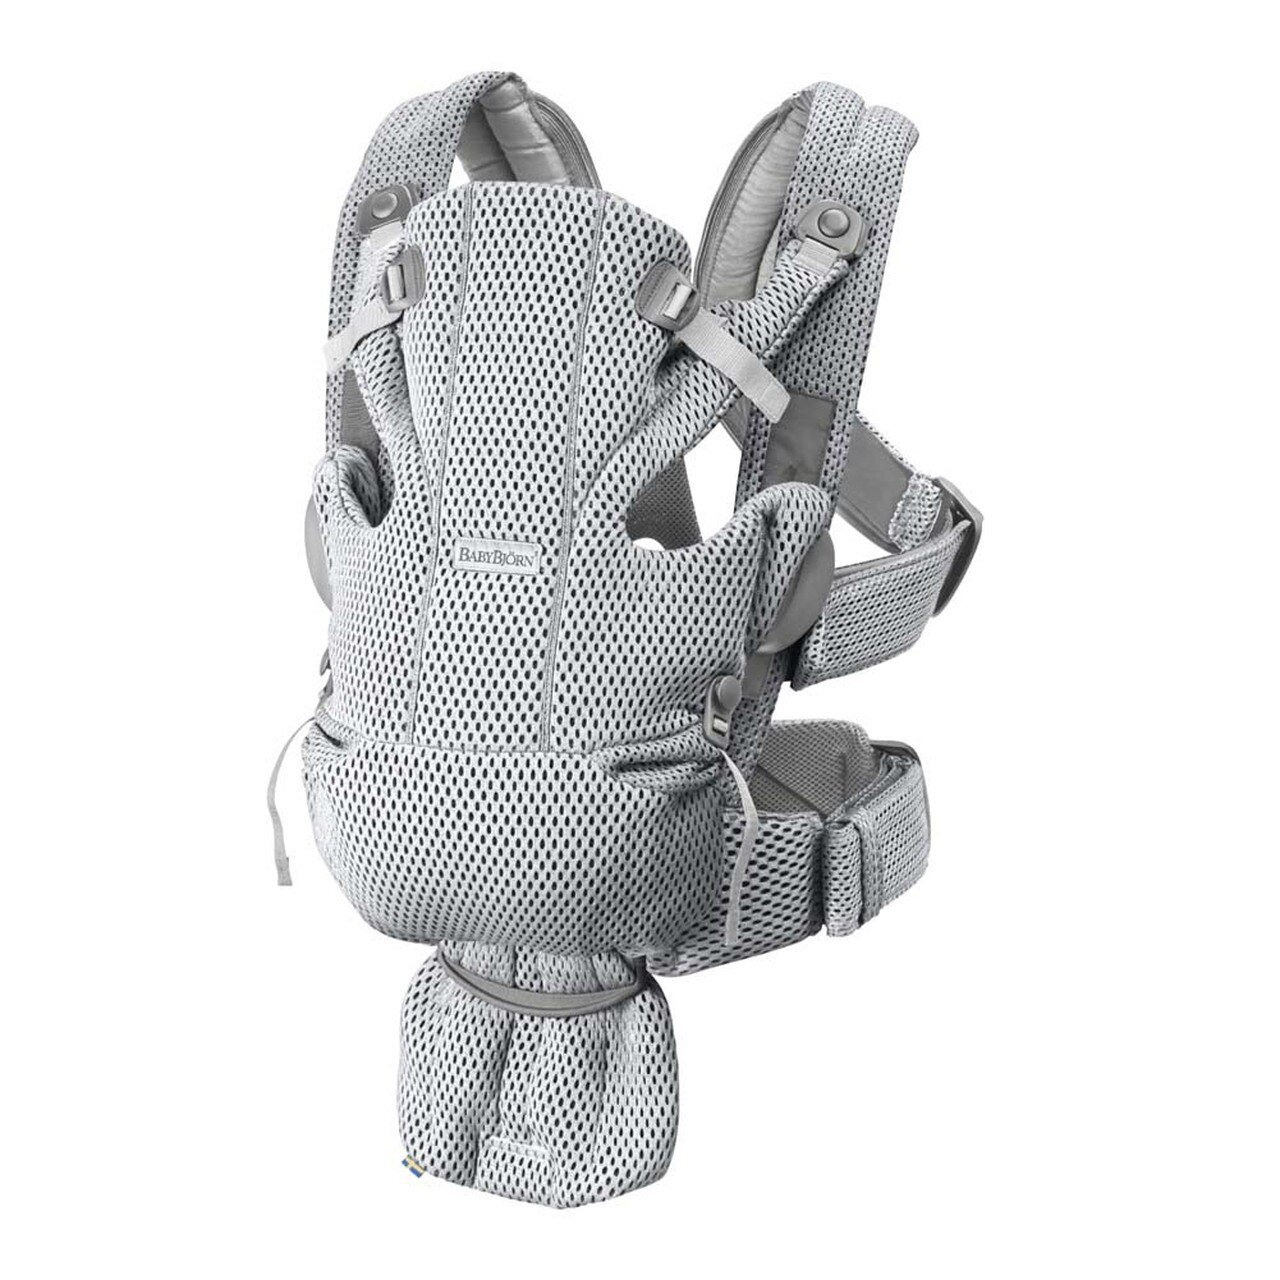 BabyBjorn Baby Carrier Free - 3D Mesh - Grey